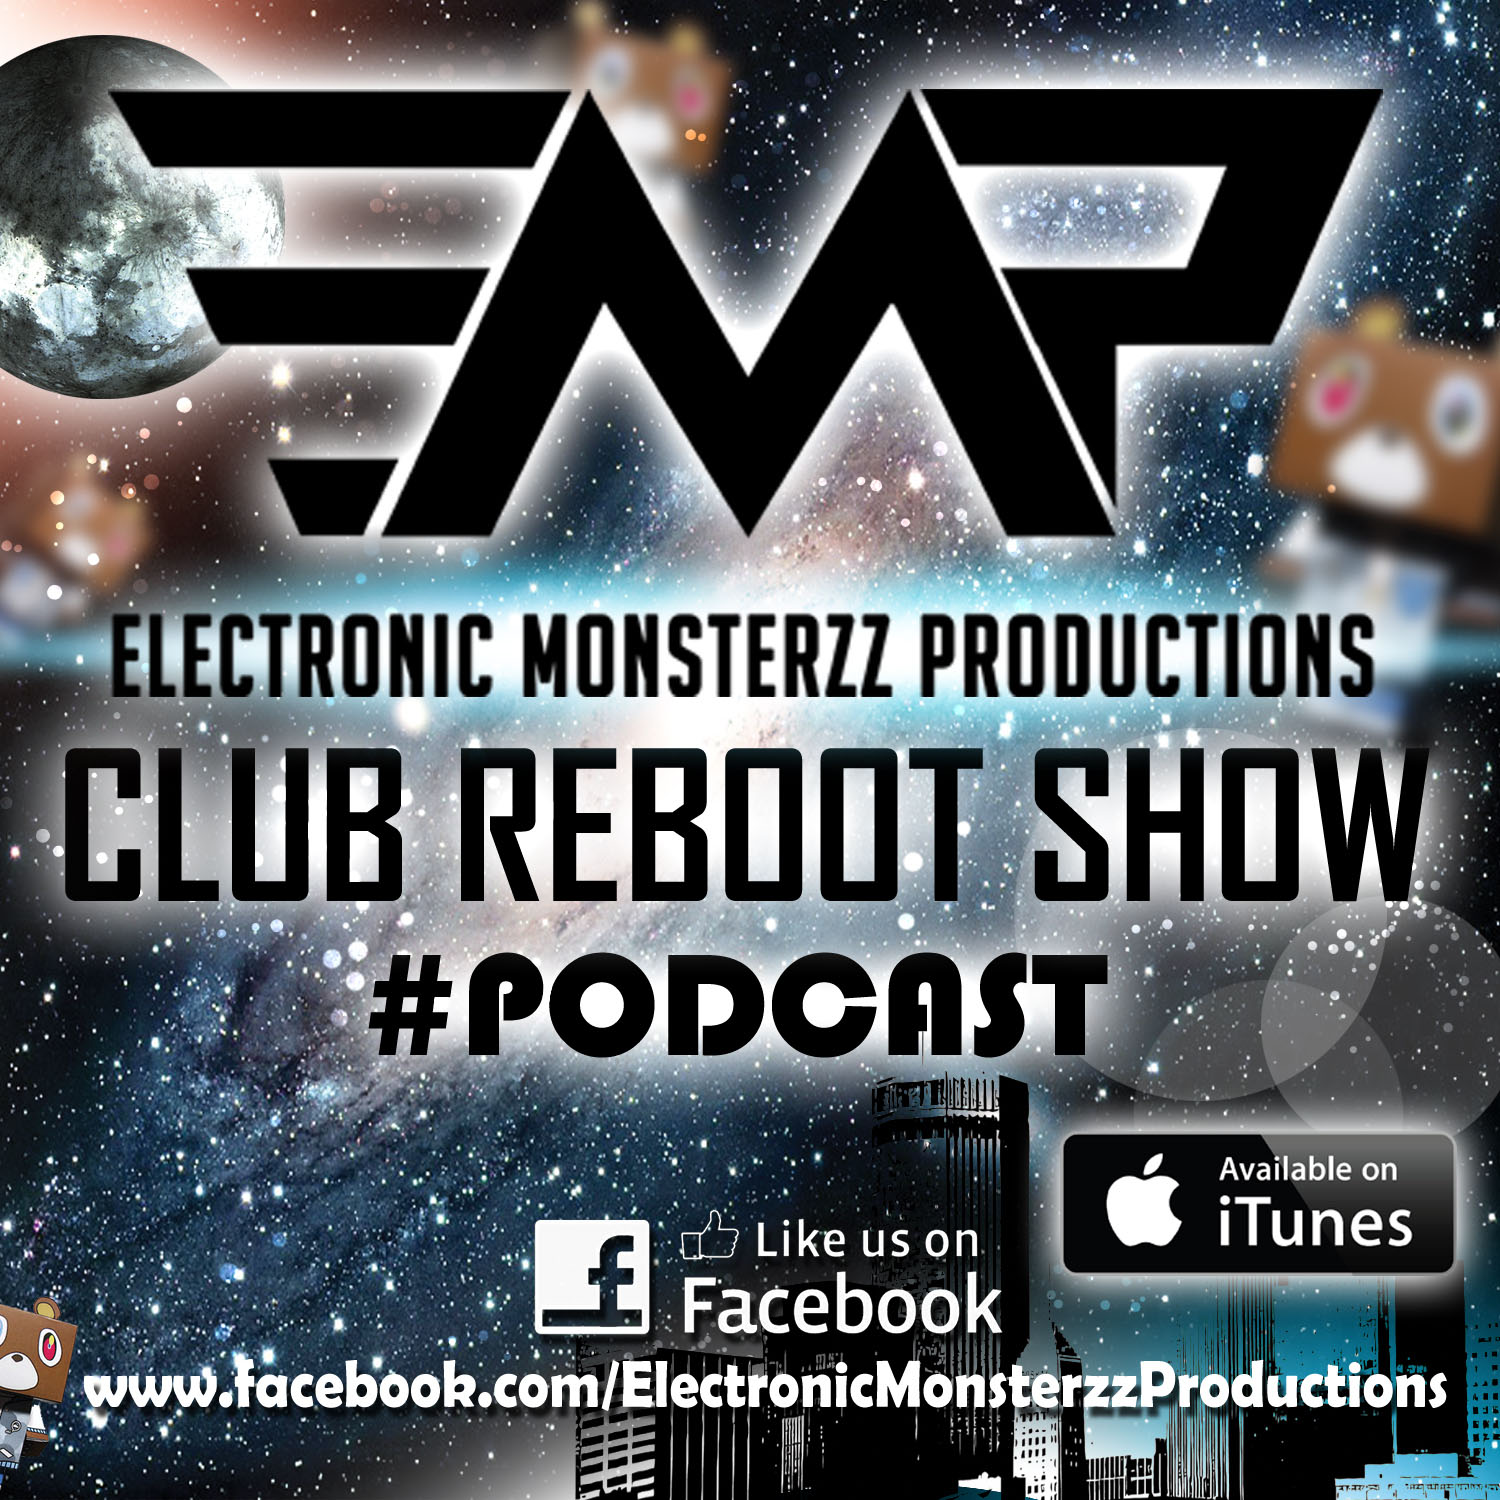 Club Reboot Show Podcast